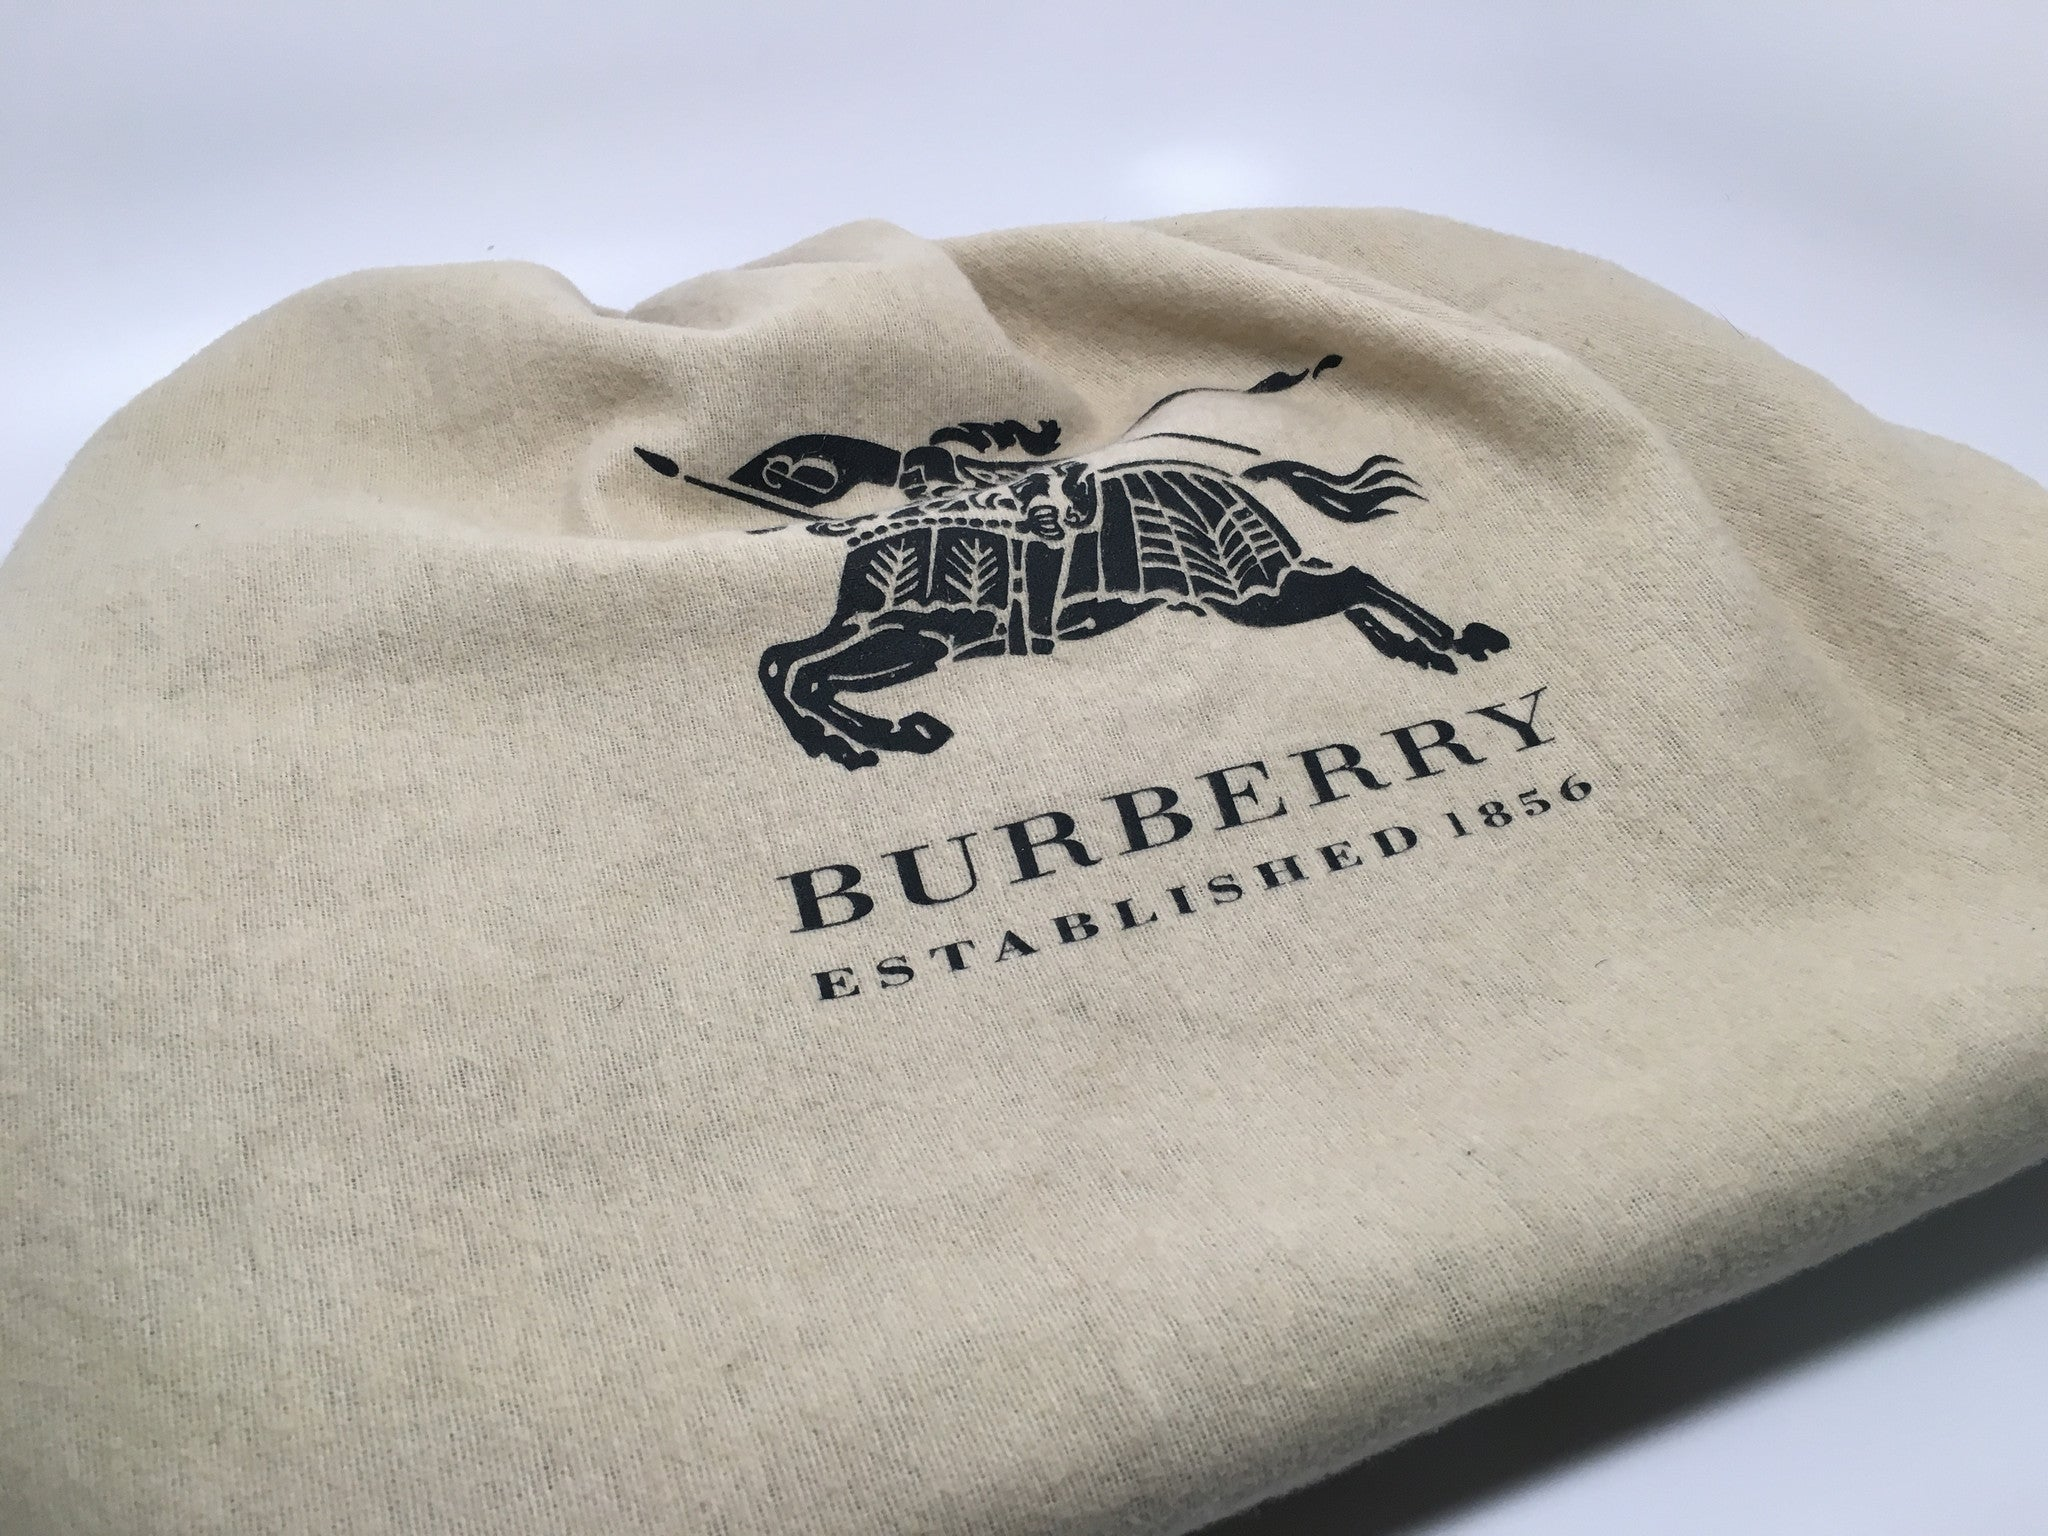 NEW BURBERRY MEDIUM CALE LEATHER HOBO BAG